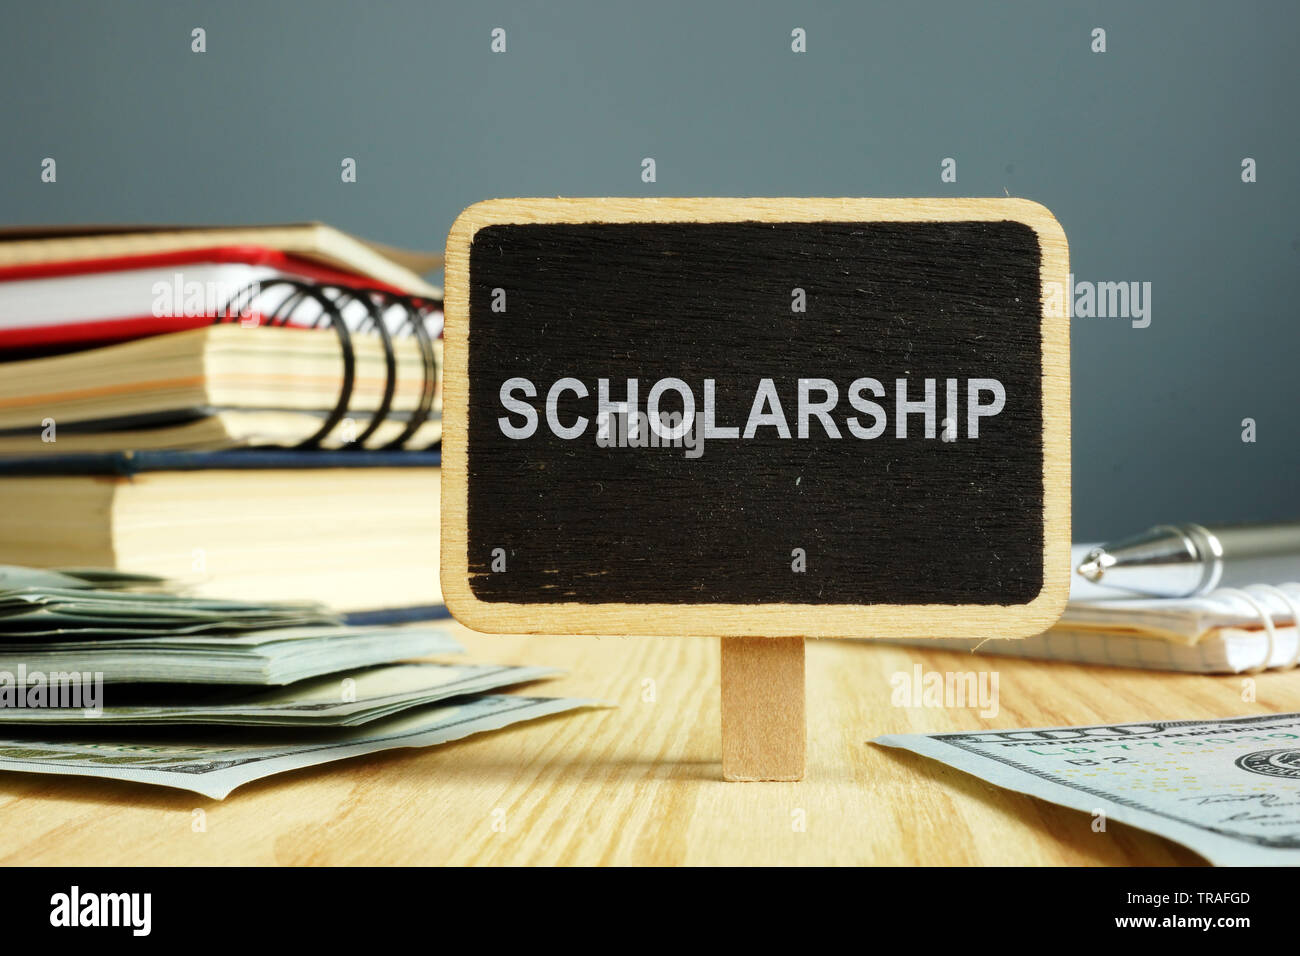 Scholarship concept. Notebooks and money for education. - Stock Image